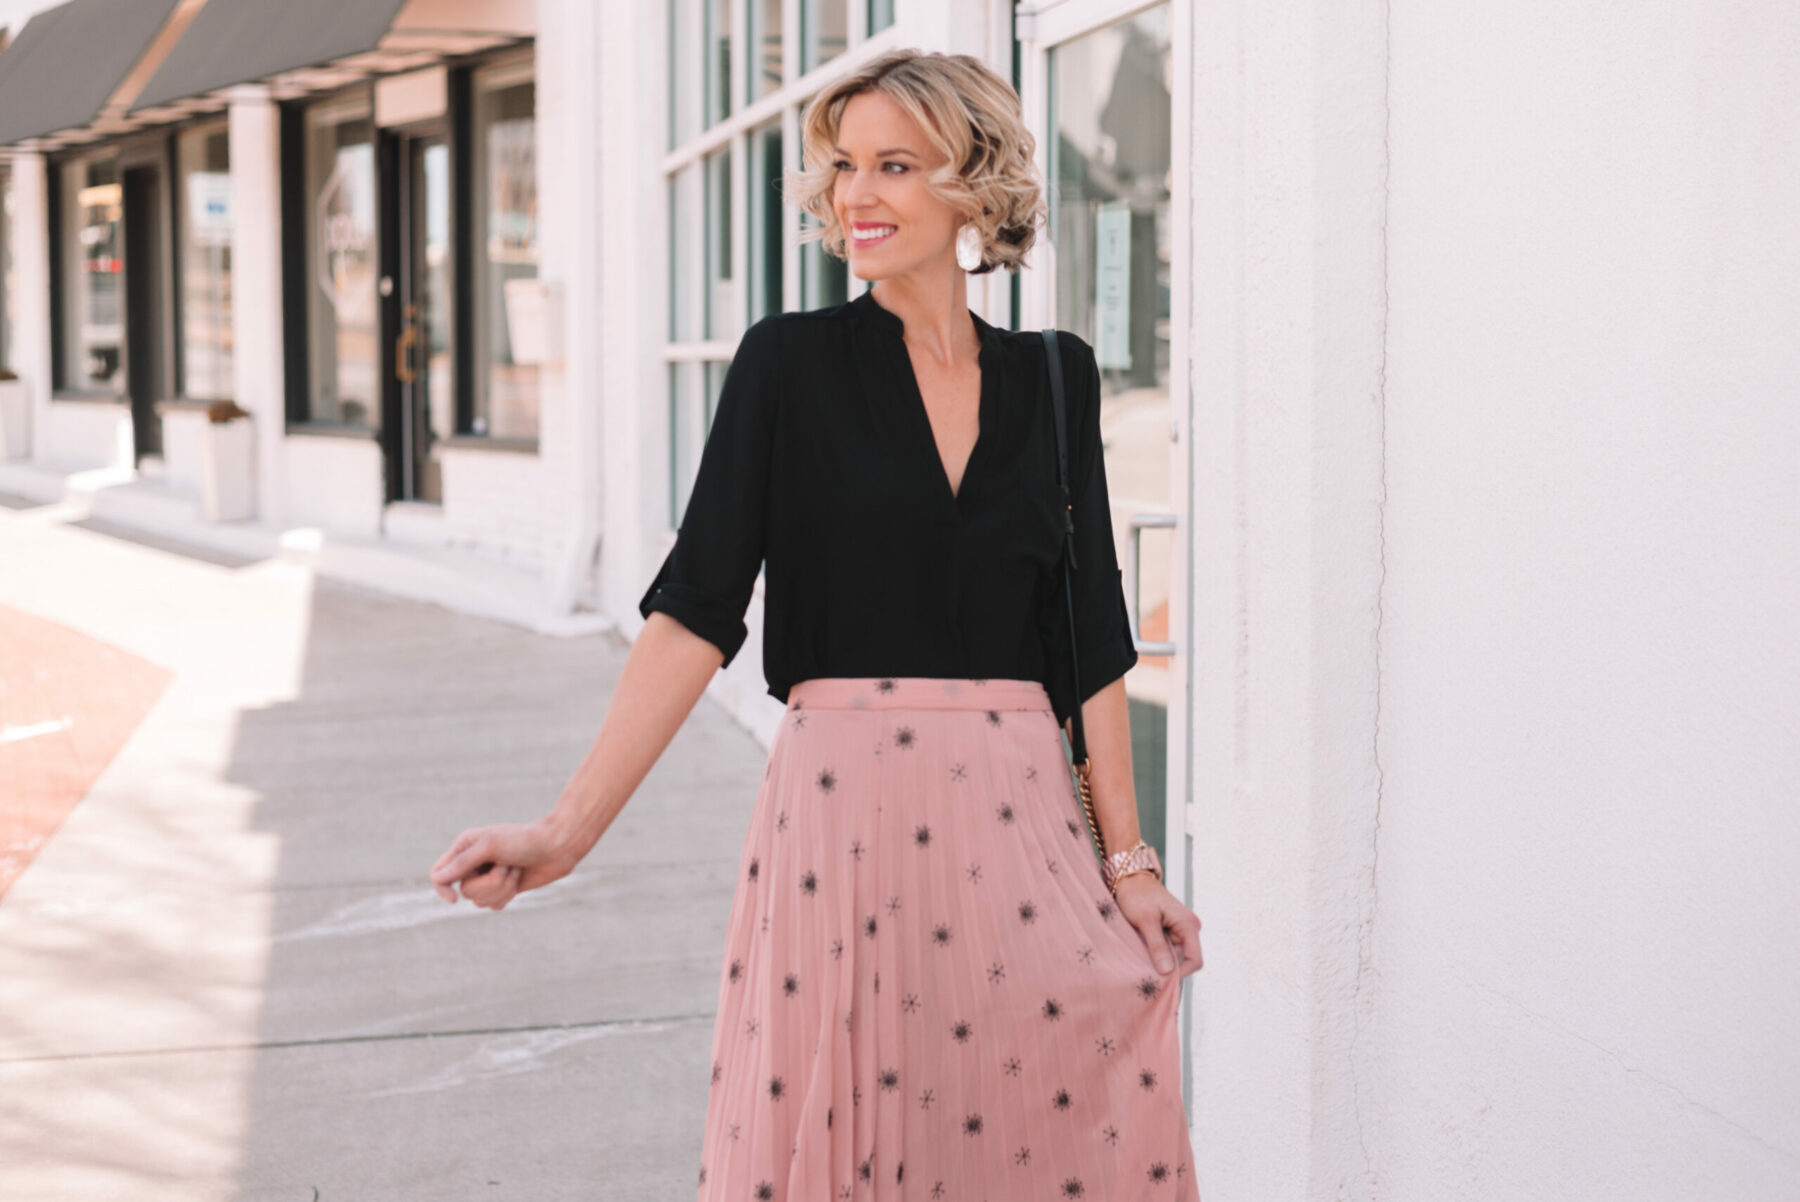 a394fe47c4 Midi Skirt Obsession + My Favorite Brand - Straight A Style